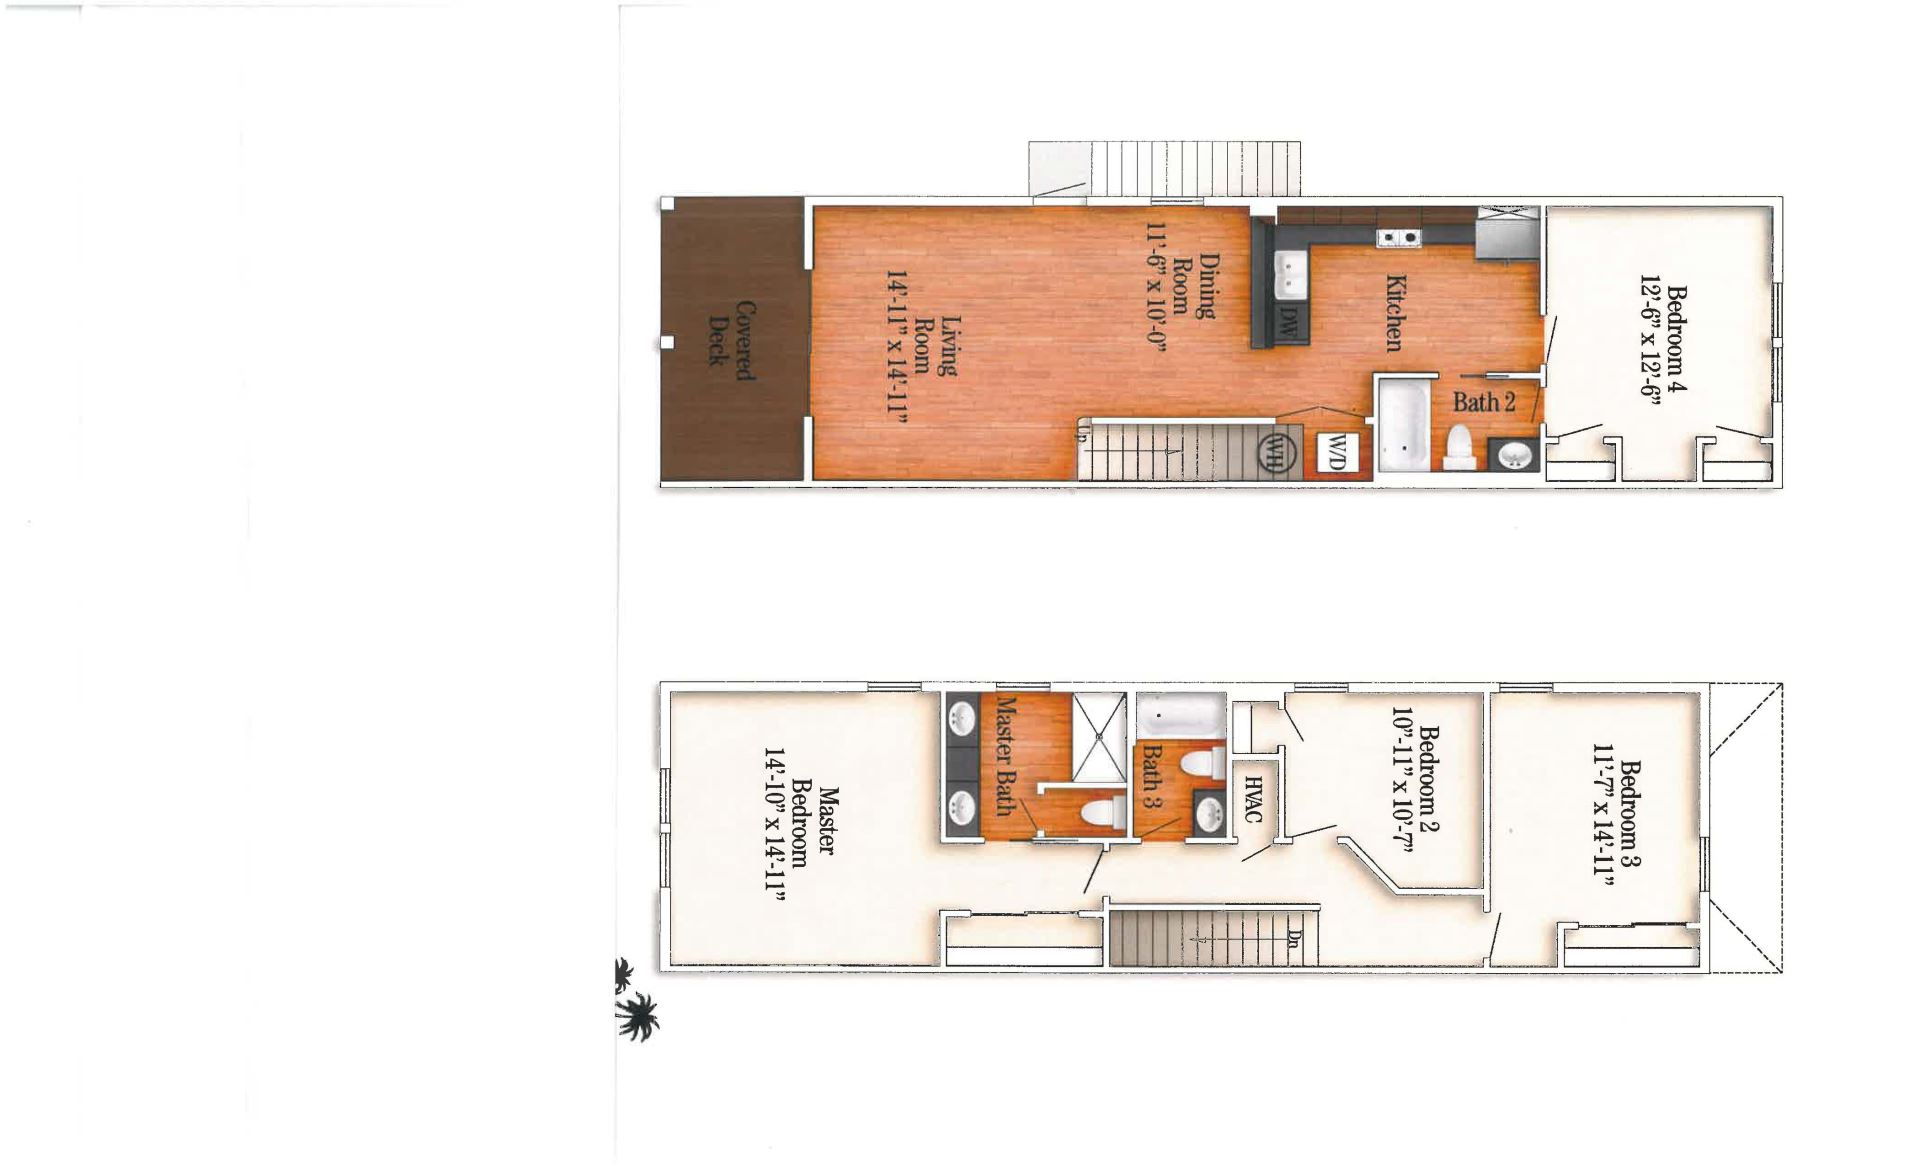 Floor Plan for REELaxation 4BR/3BA by Sombrero Beach with Pool and Dockage PLR2016-00341